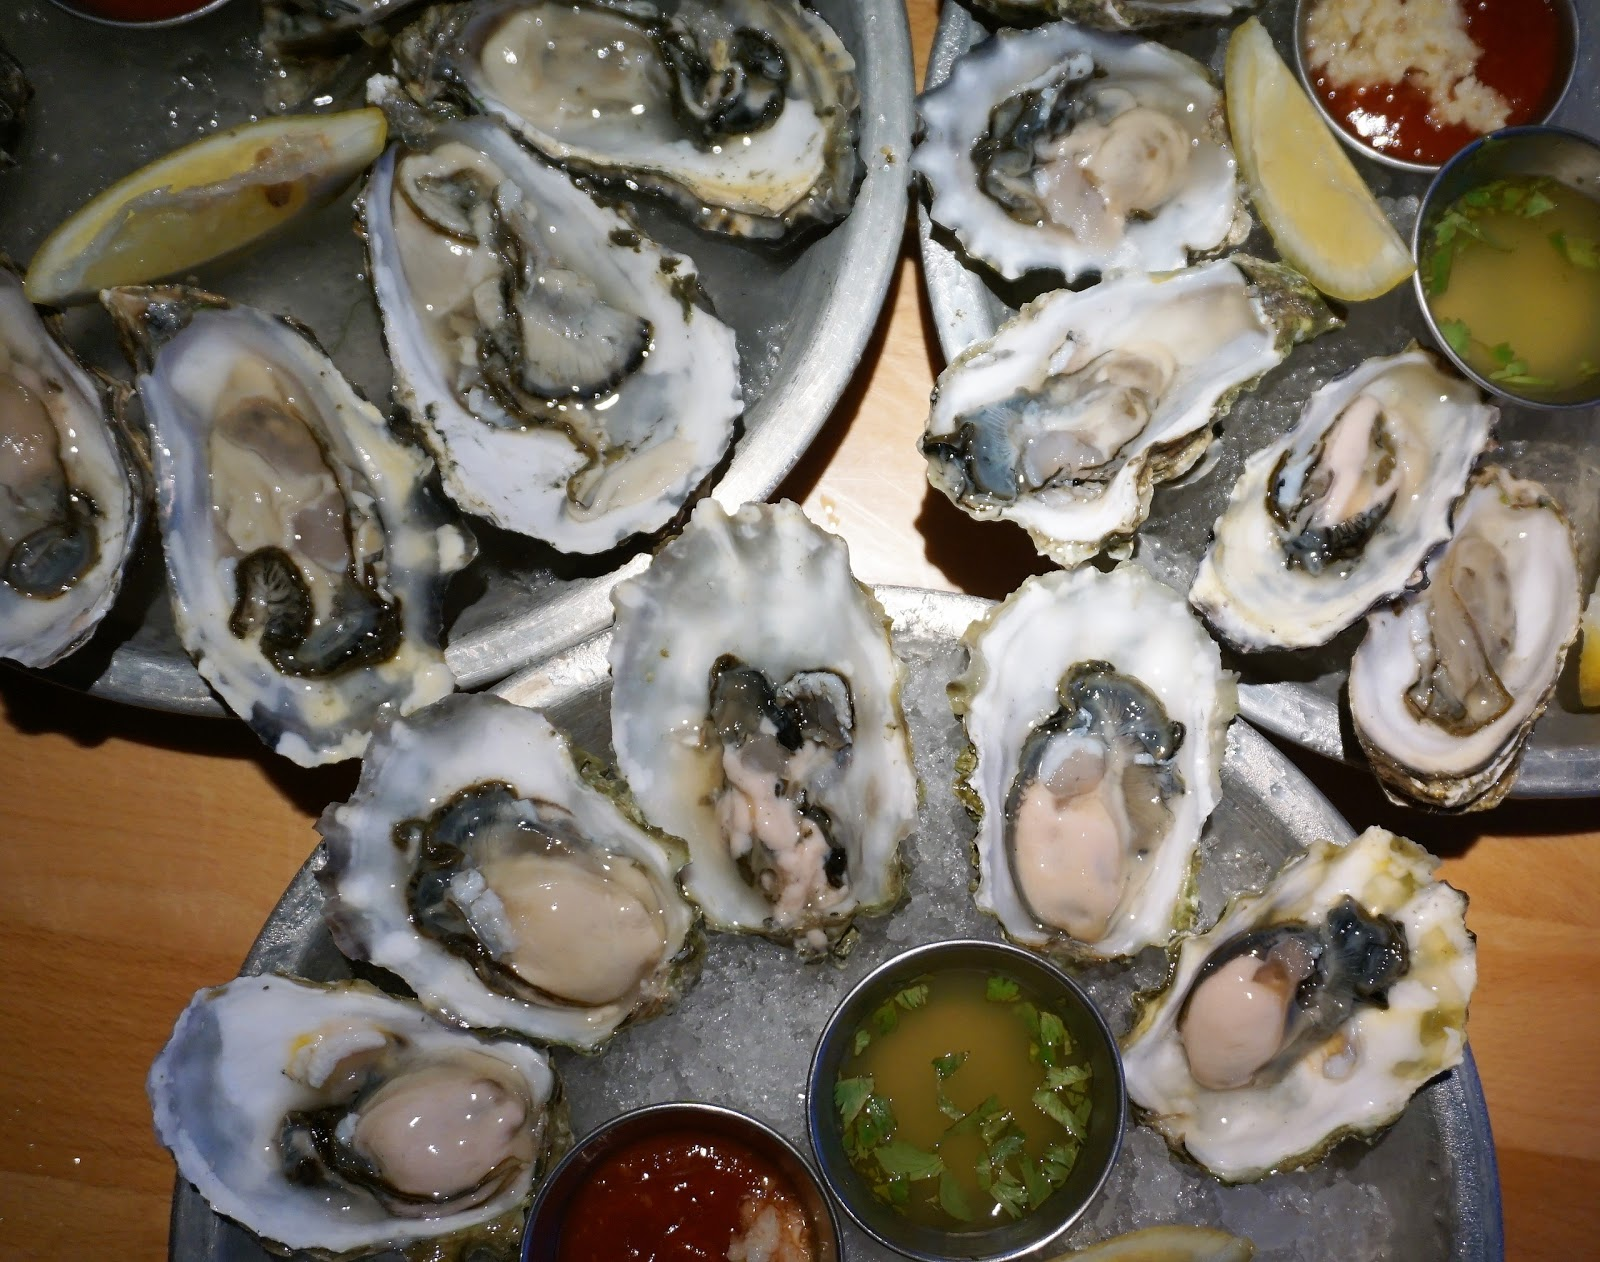 Oysters for Only $1 During Happy Hour @ The Big Catch Seafood - Huntington Beach